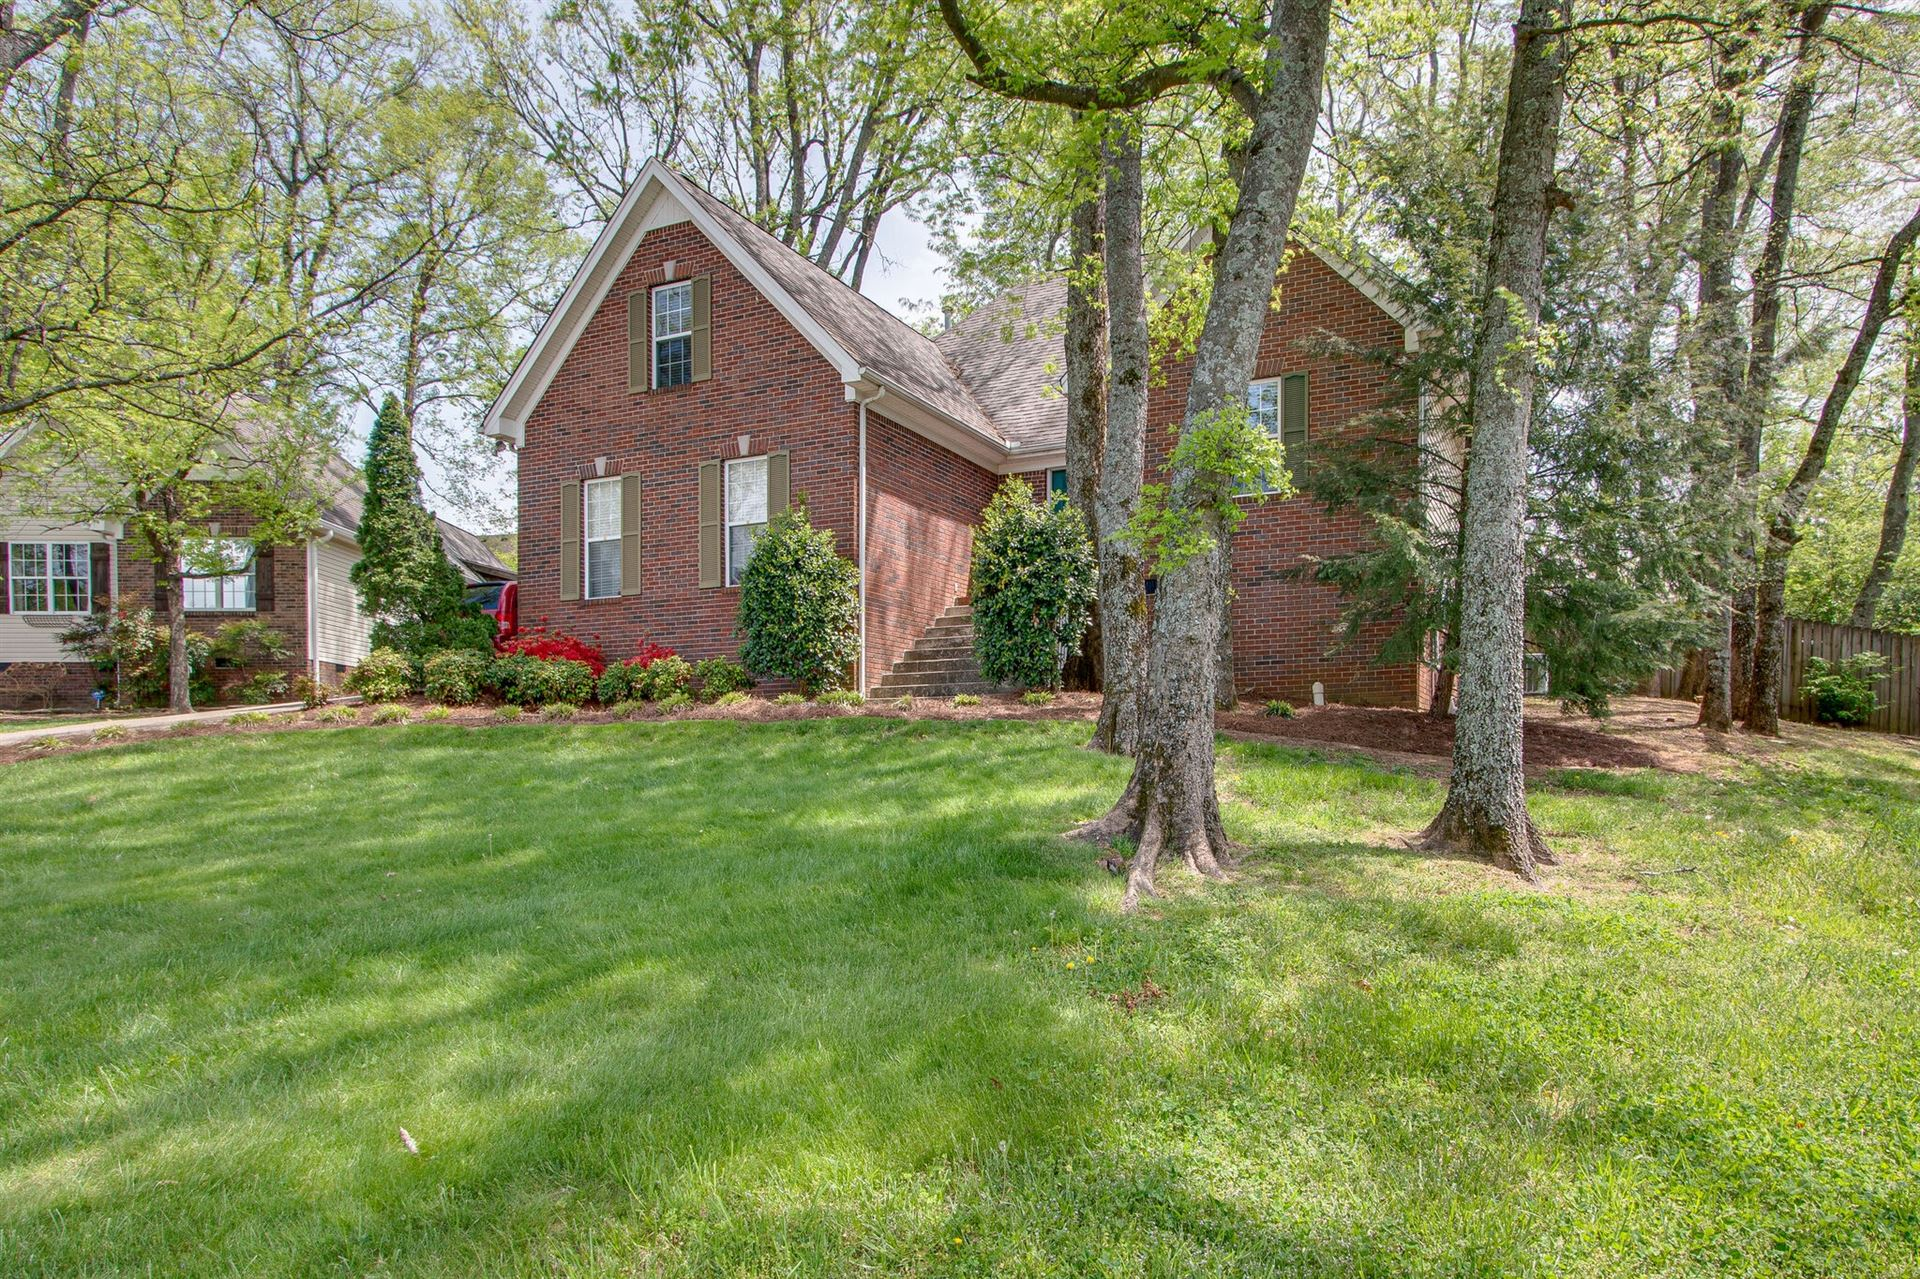 Photo of 1615 Pacer Ct, Spring Hill, TN 37174 (MLS # 2251646)